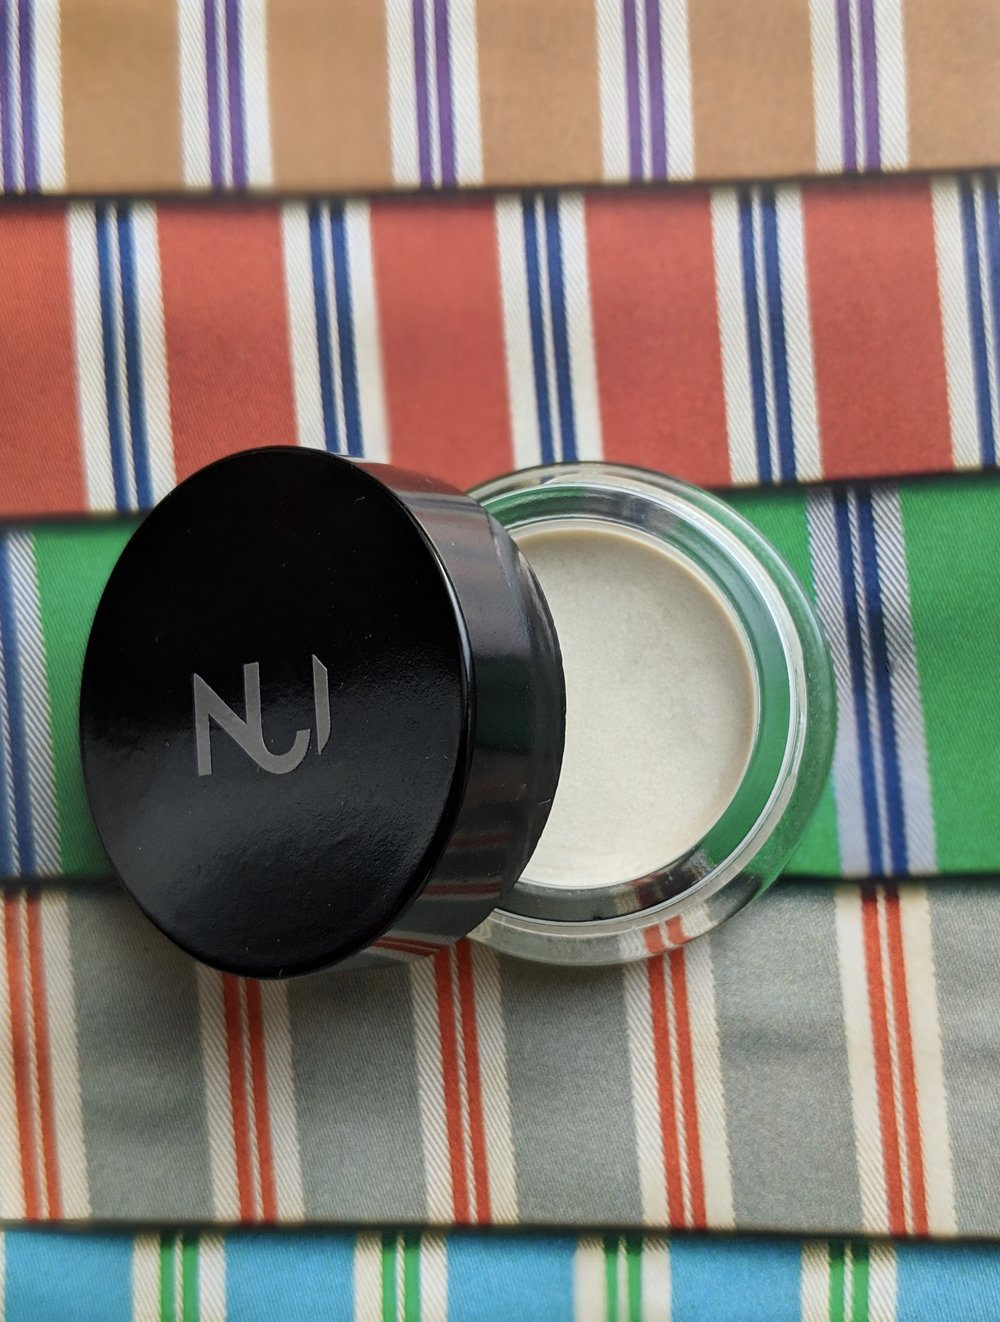 5. NUI Cosmetics Illusion Cream Eye Shadow, HUKARERE - This product really impressed me. It is a natural looking creamy eye shadow that makes your eyelids look dewy. Perfect for those who don't like glitter and color on their eyes but still want a subtle drama. 100% natural and vegan.€34